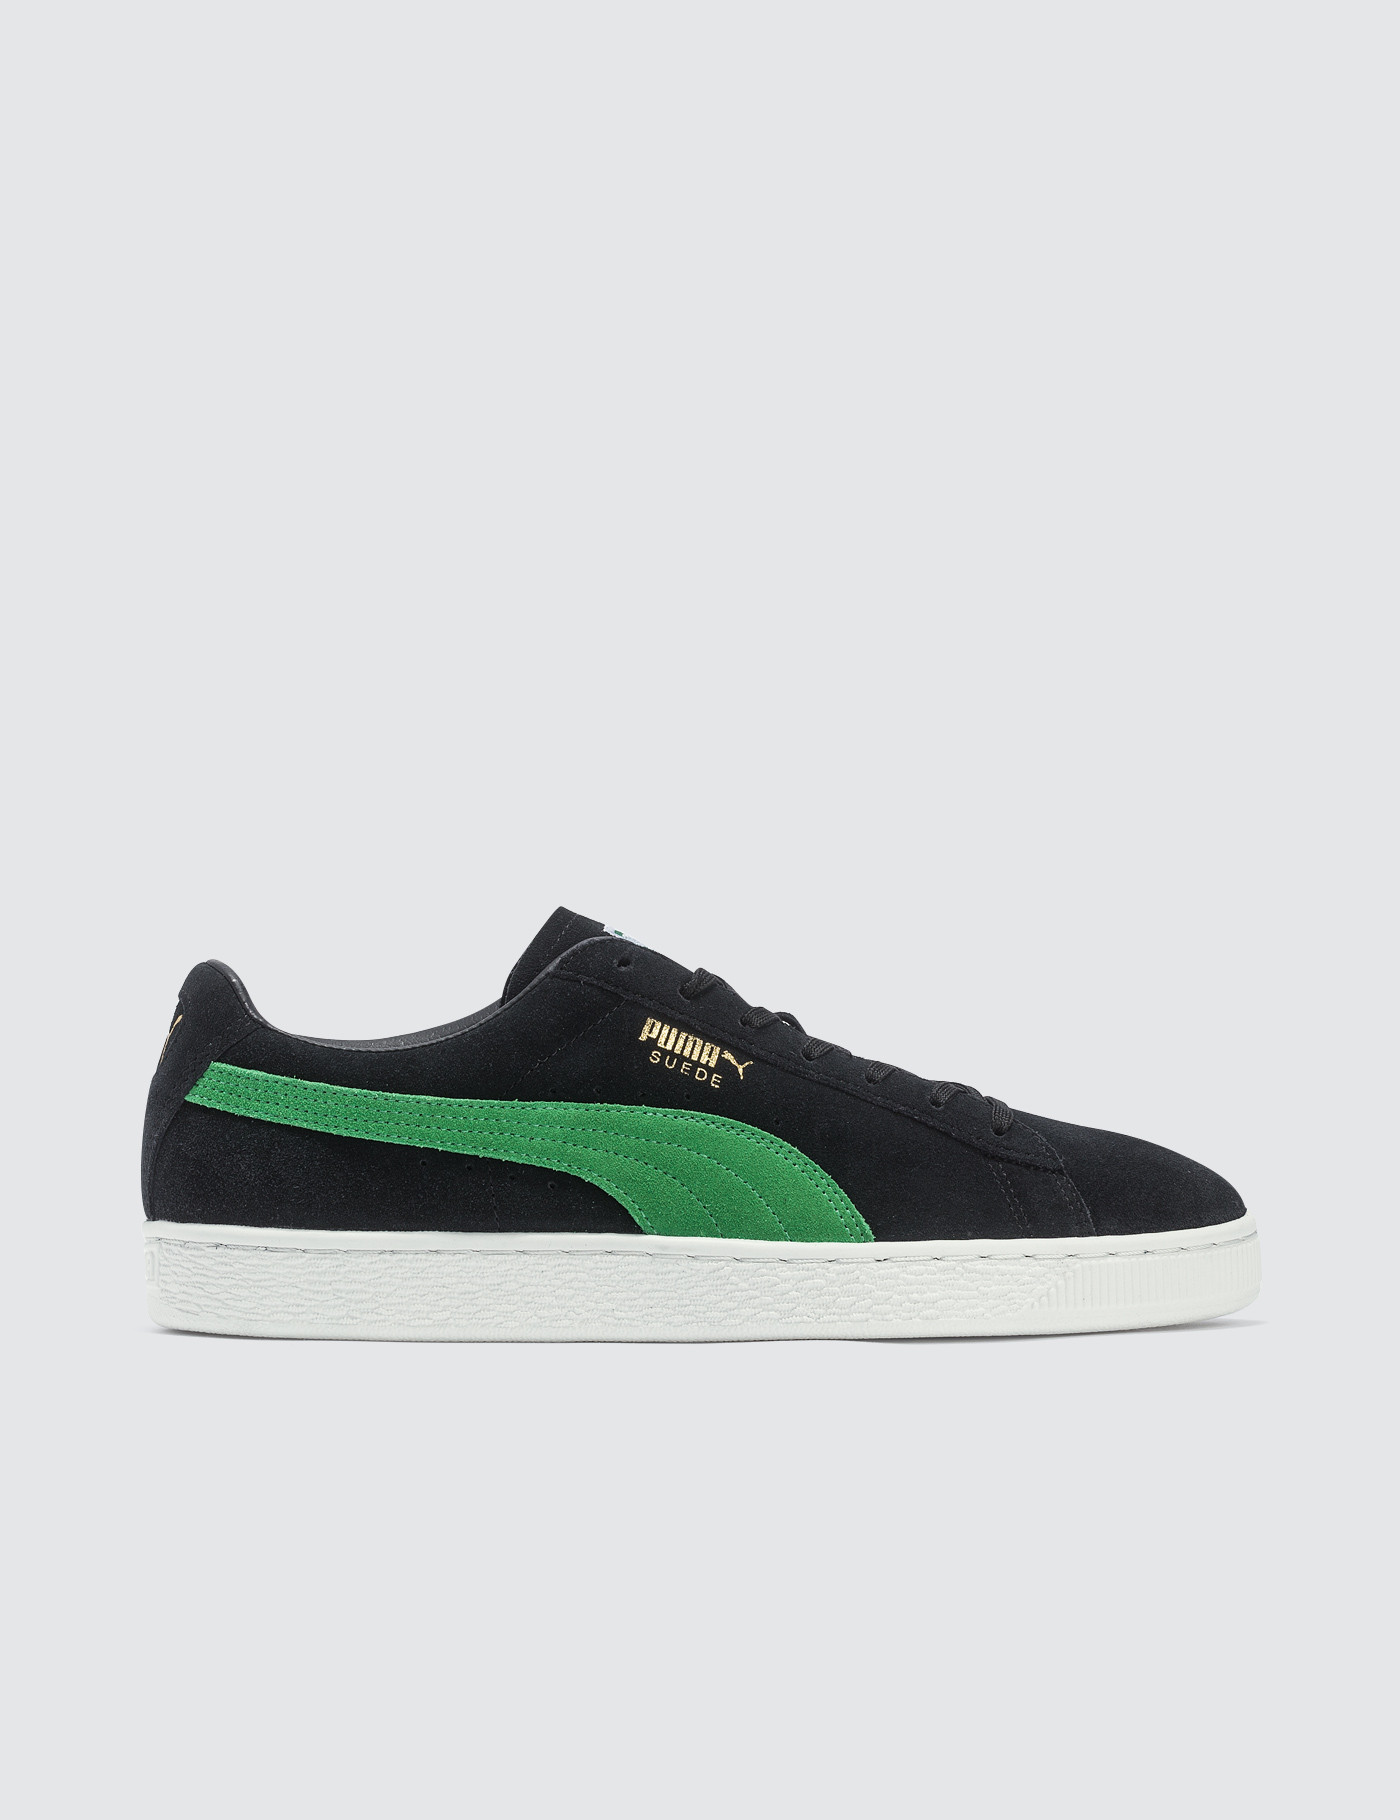 ae79fd937539 Buy Original Puma XLARGE X Suede Classic 50th Anniversary at ...